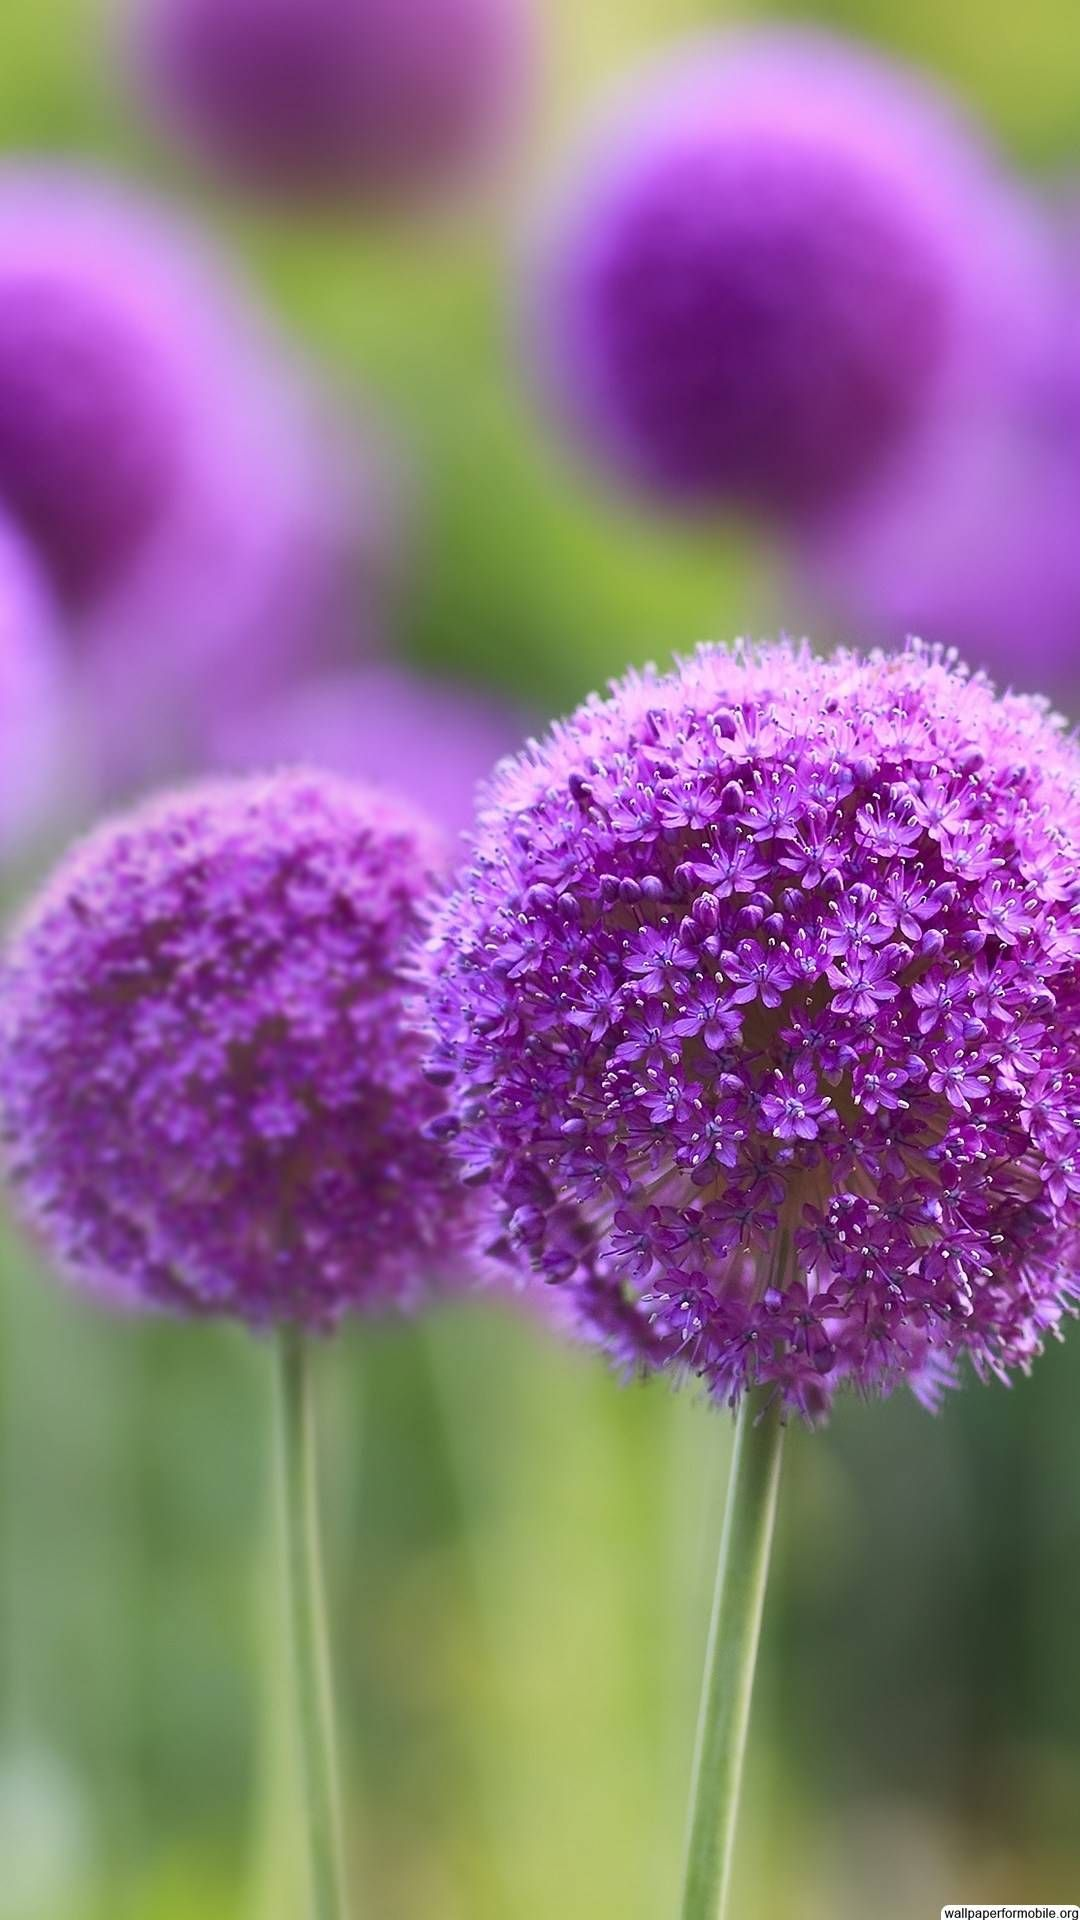 Http Wallpaperformobile Org 7379 Free Mobile Wallpapers Samsung Html Free Mobile Purple Flowers Wallpaper Flower Iphone Wallpaper Wallpaper Nature Flowers